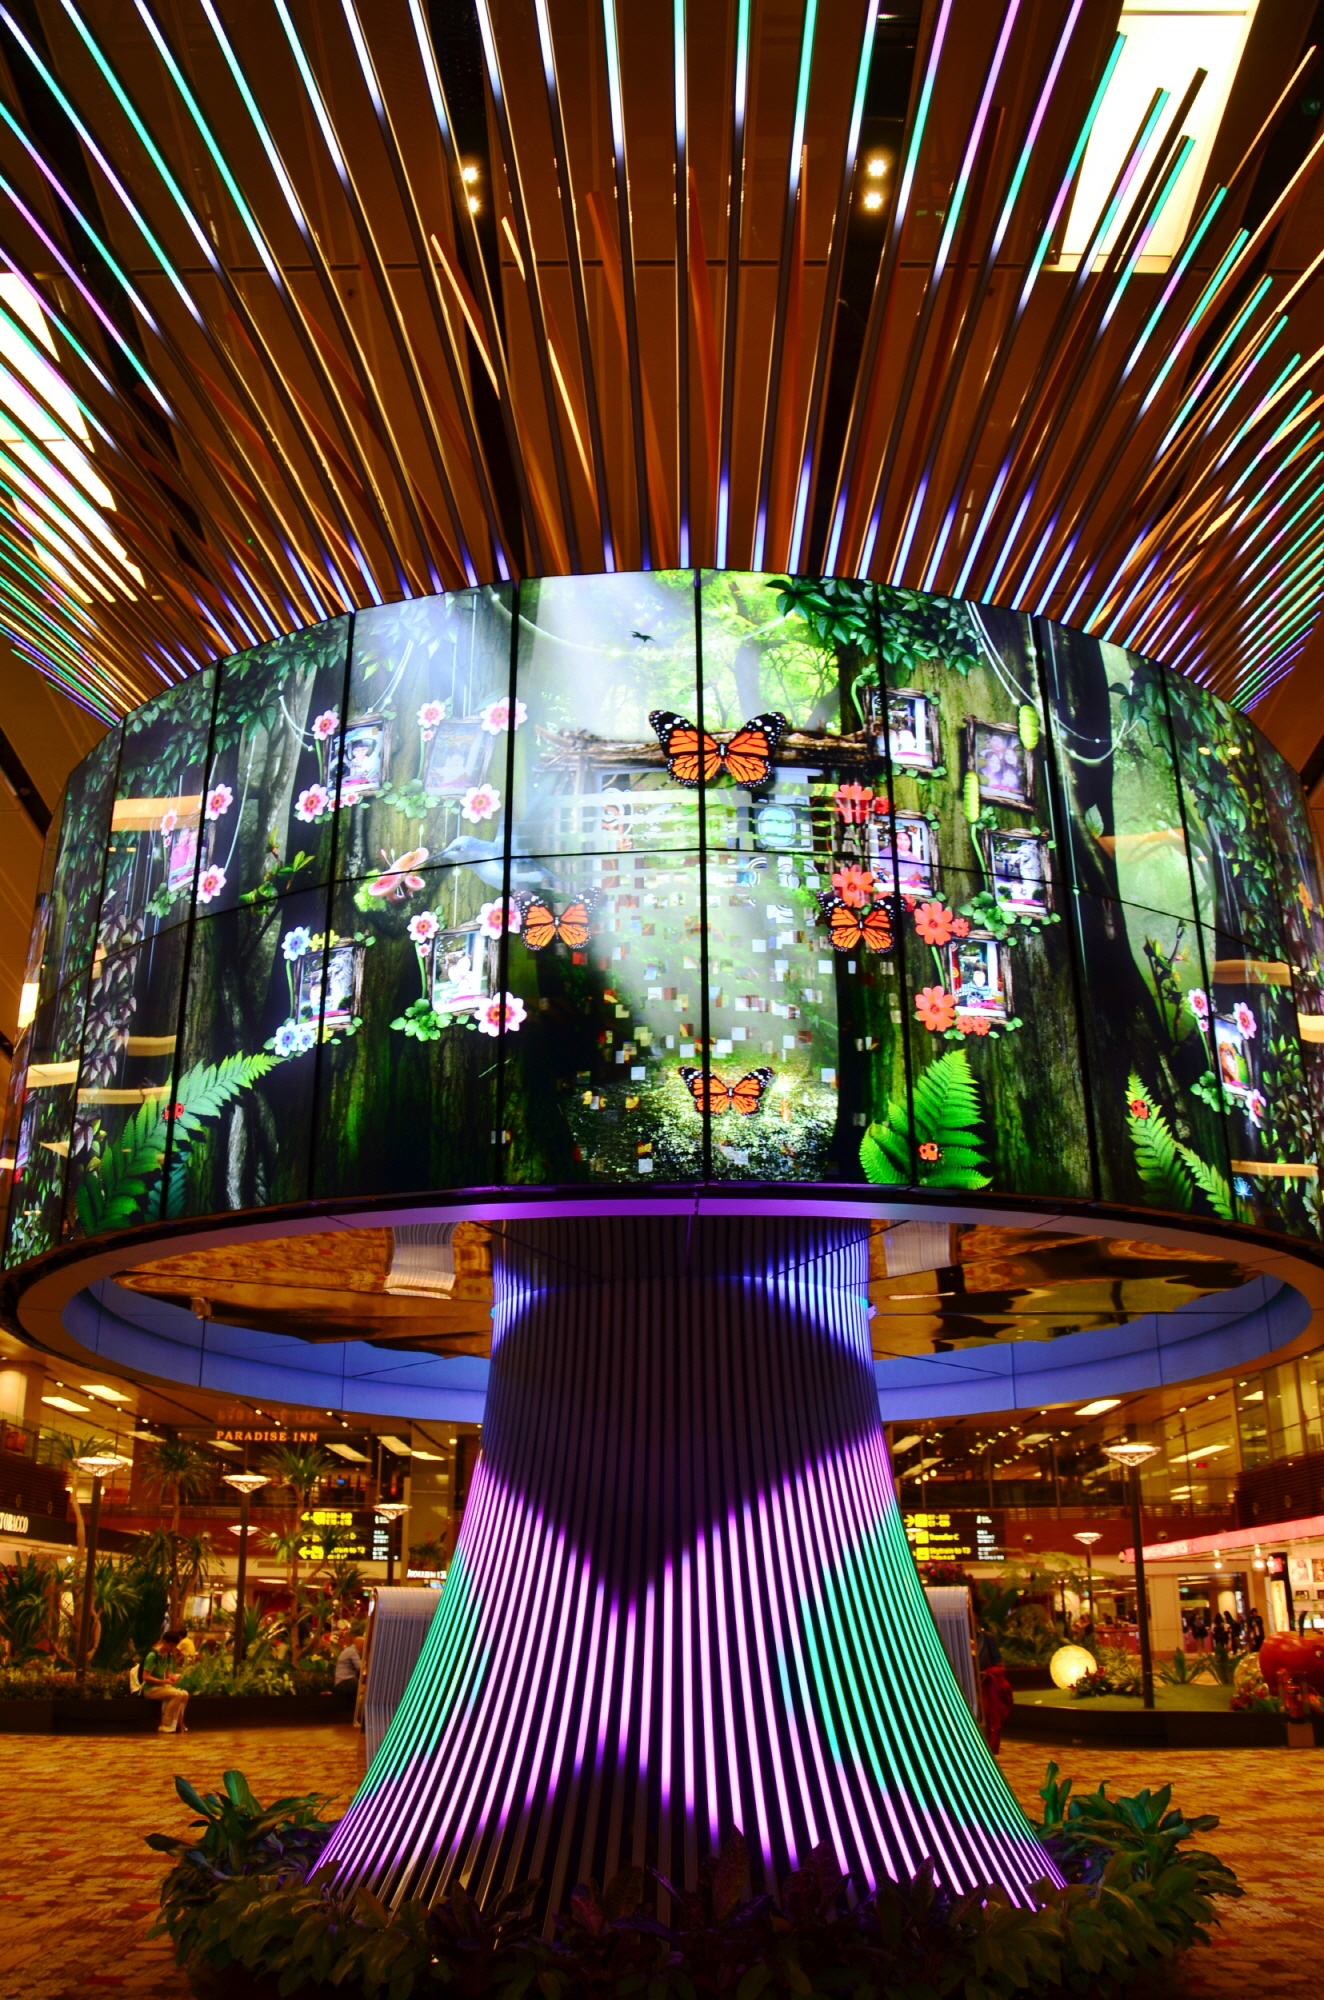 Numerous LG 47WV30 displays create a 'Social Tree' video wall that display vivid images in Changi Airport's Terminal One